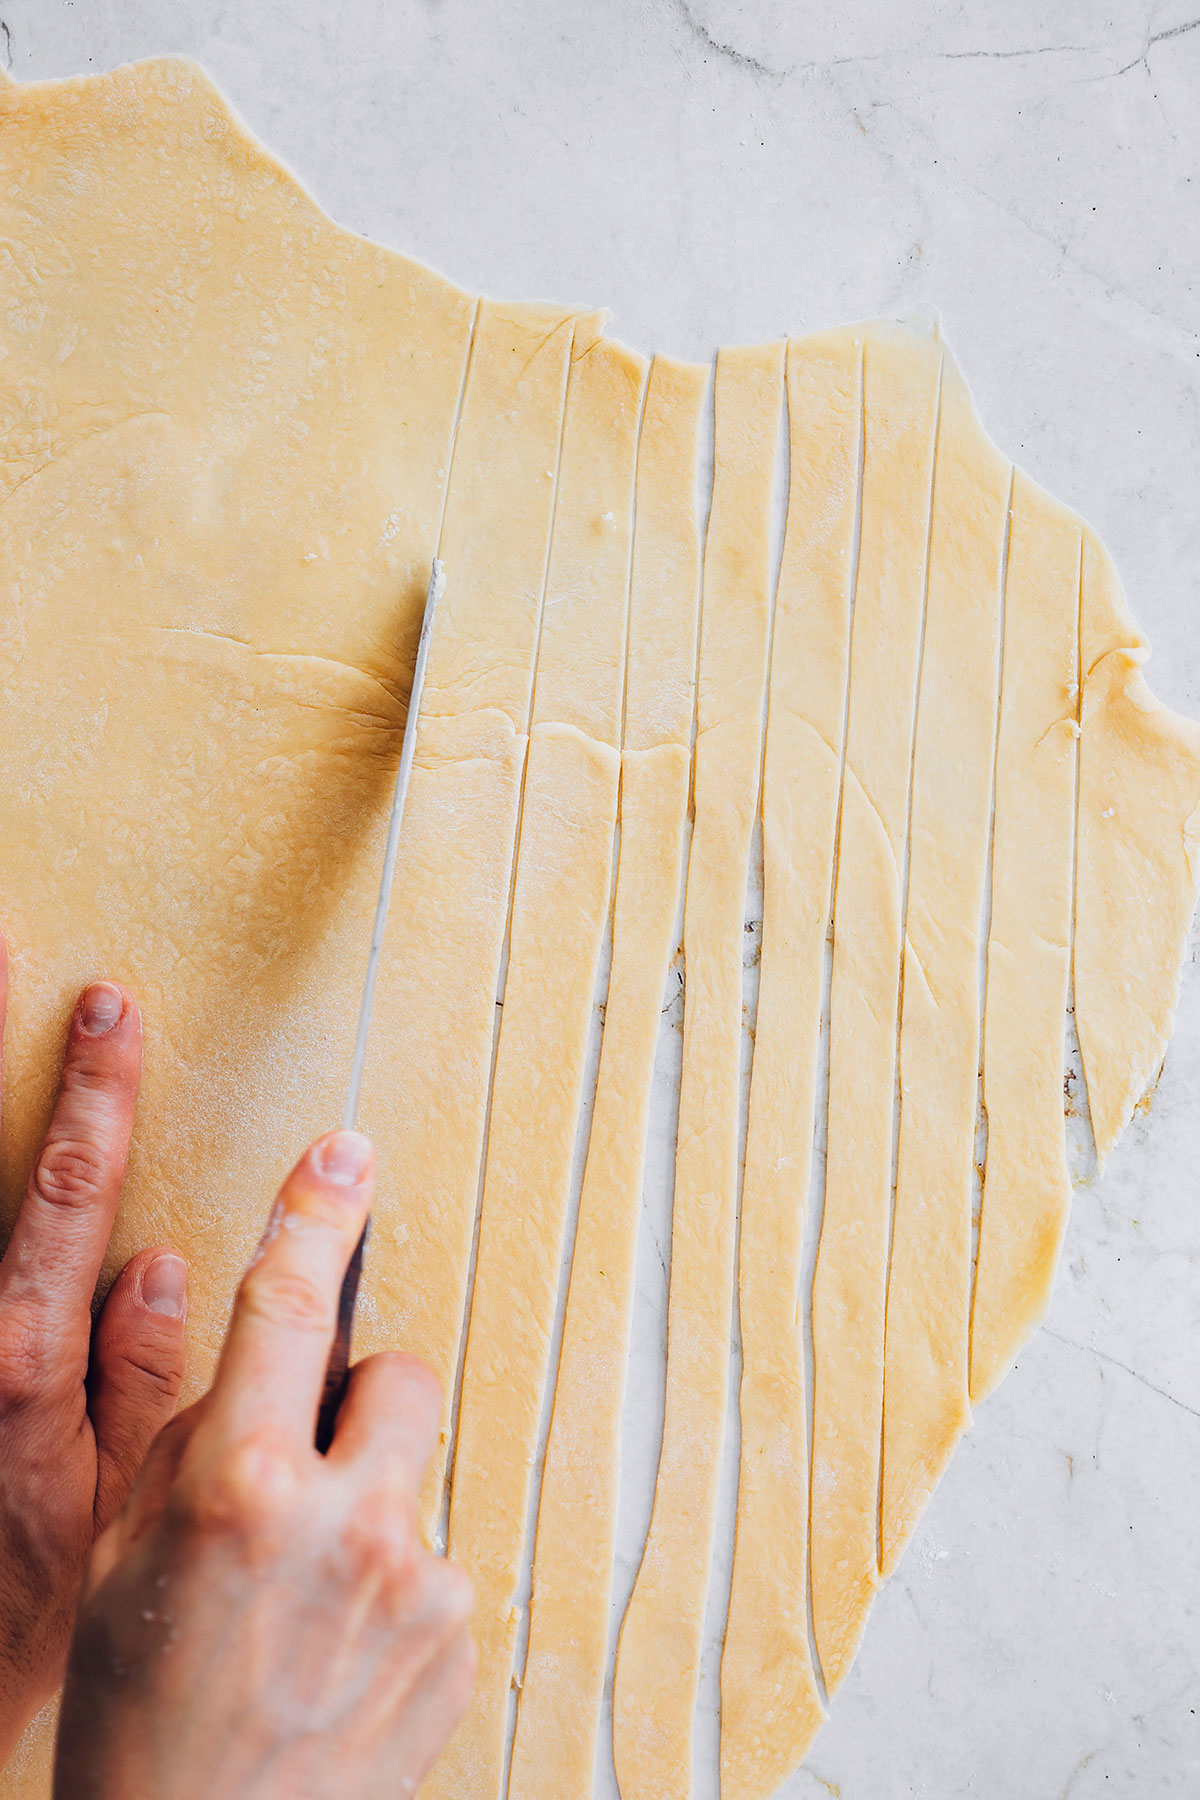 Cutting homemade pasta strips